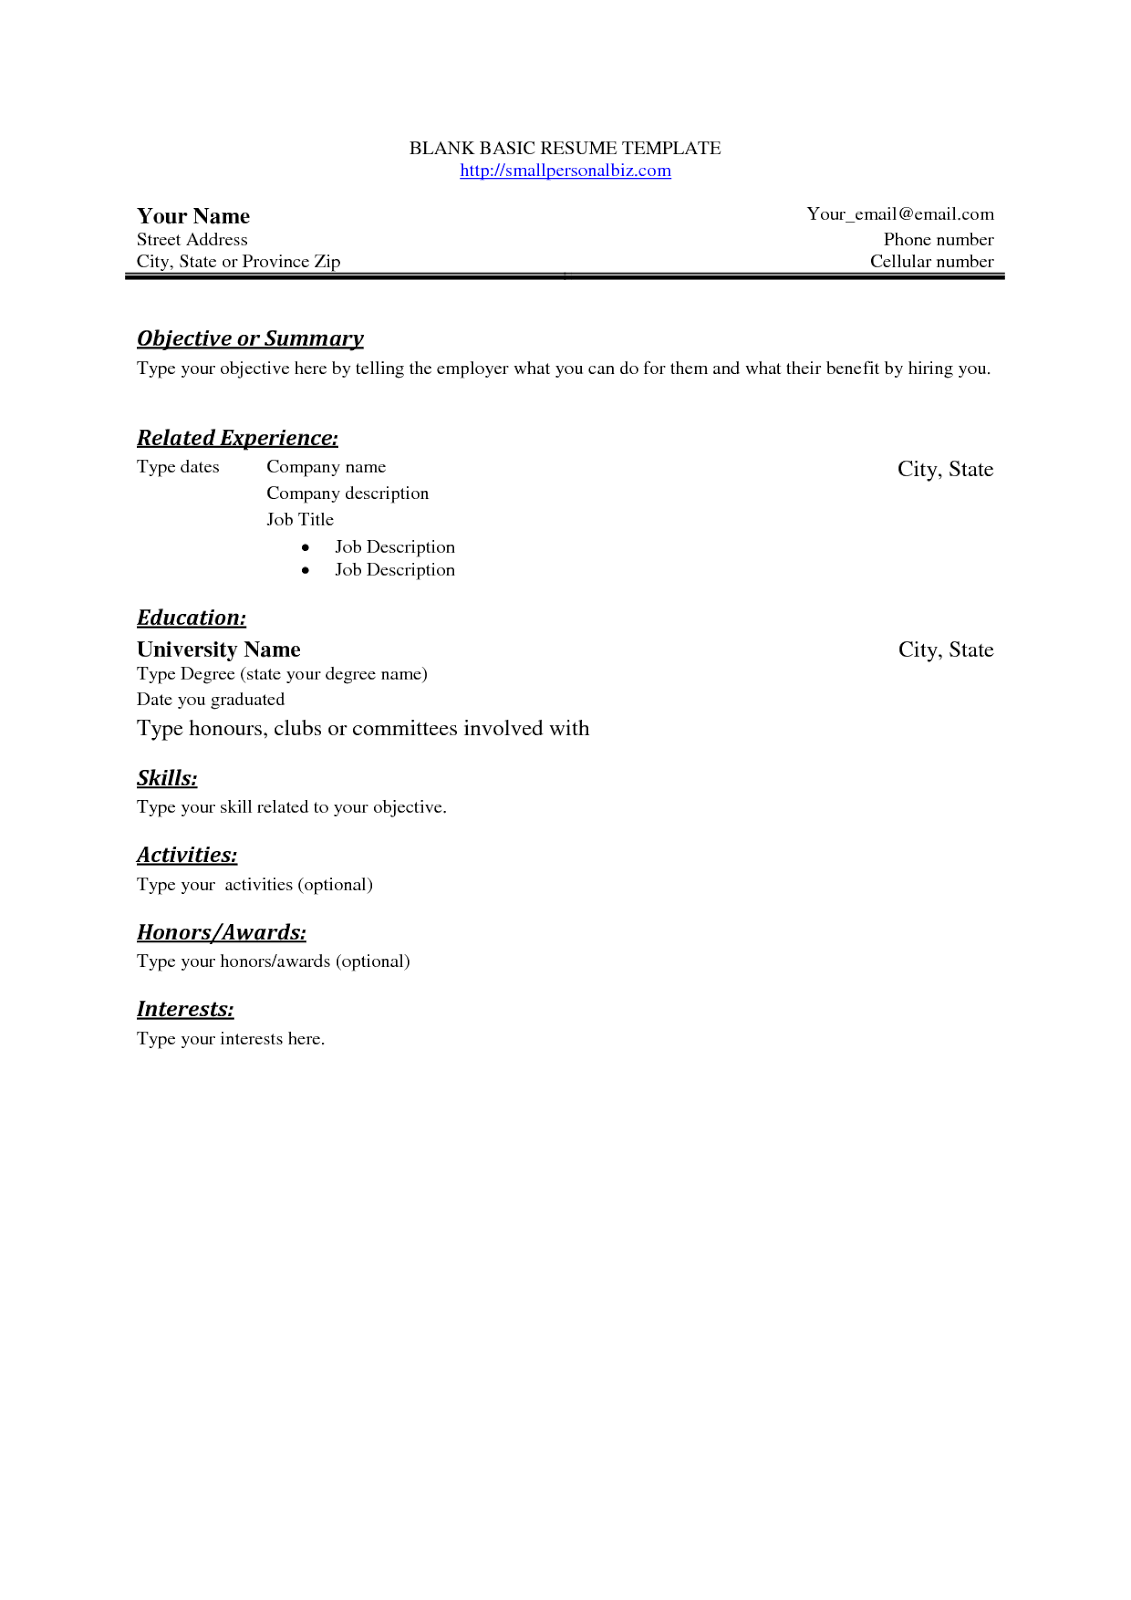 Sales Resume Templates Free Copy Great S Resume Car Sman Resume